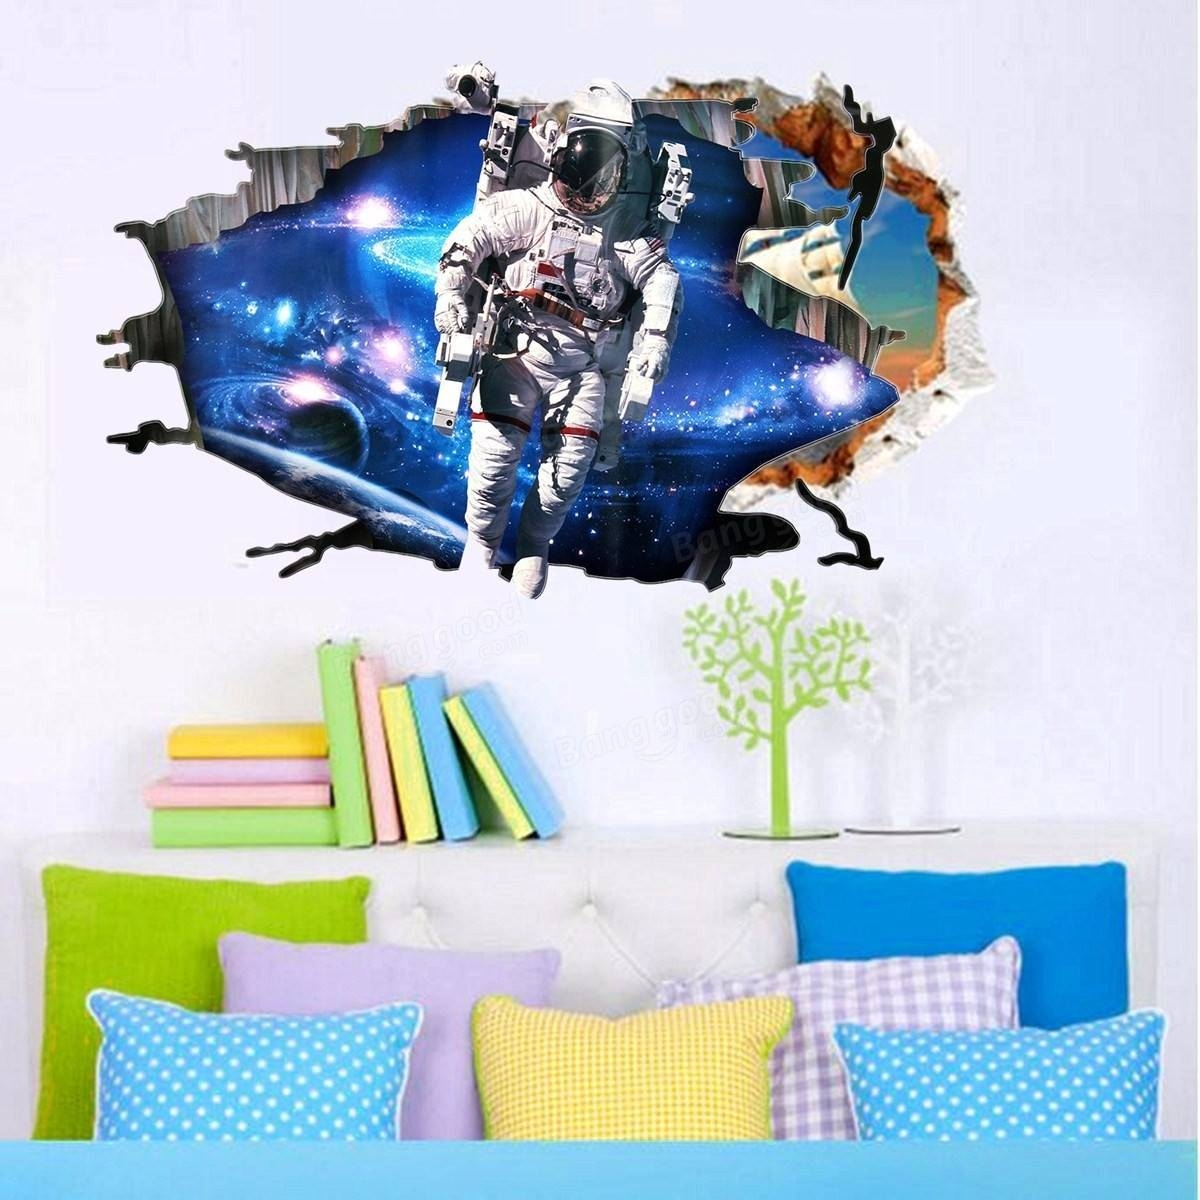 3d Wall Stickers Wallpaper Space Astronauts Decor Kids Room Decal Inside Newest Astronaut 3d Wall Art (View 18 of 20)